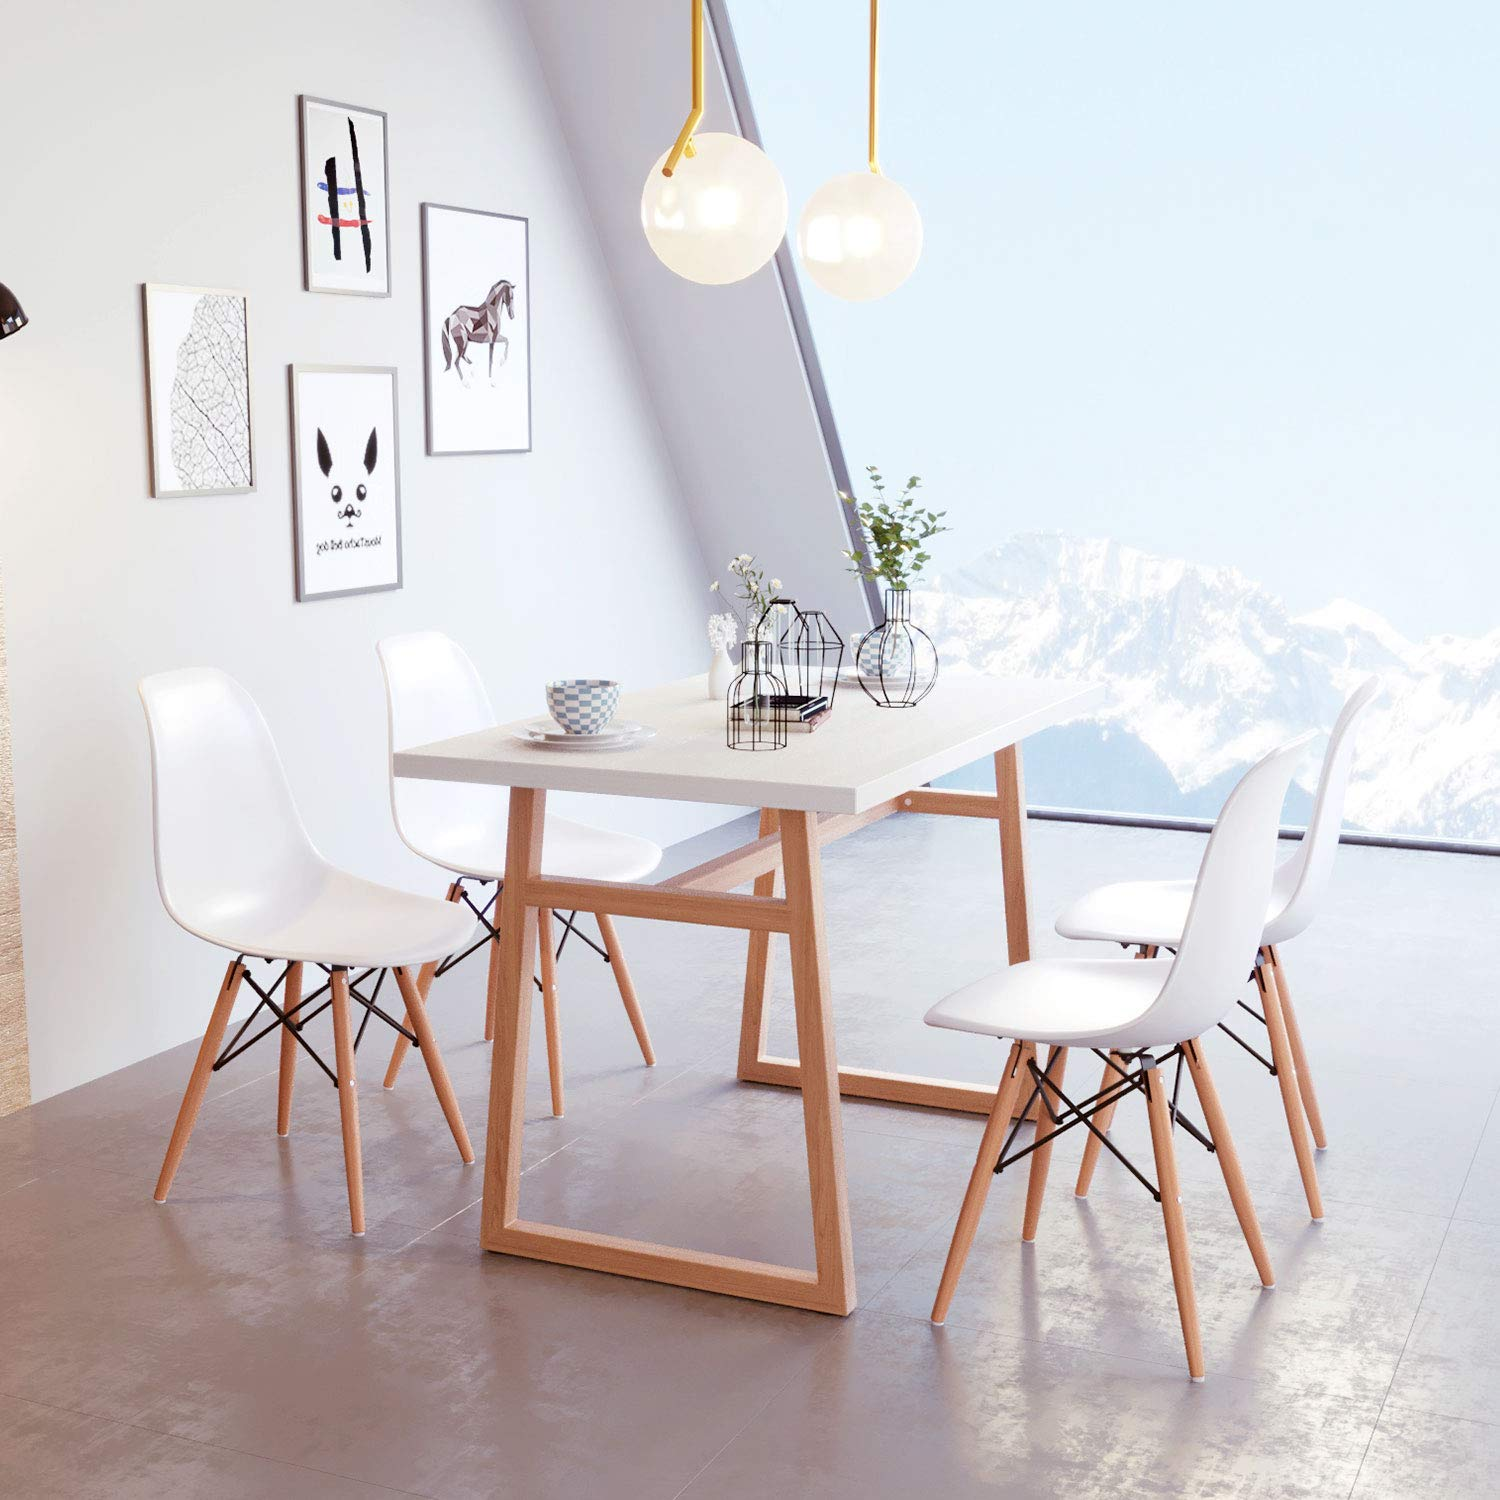 Miraculous Jeffordoutlet Dining Table And Chairs Set Of 4 Chairs Modern Home Kitchen Living Room Furniture White Wooden Table Set Of 4 Chairs Download Free Architecture Designs Rallybritishbridgeorg